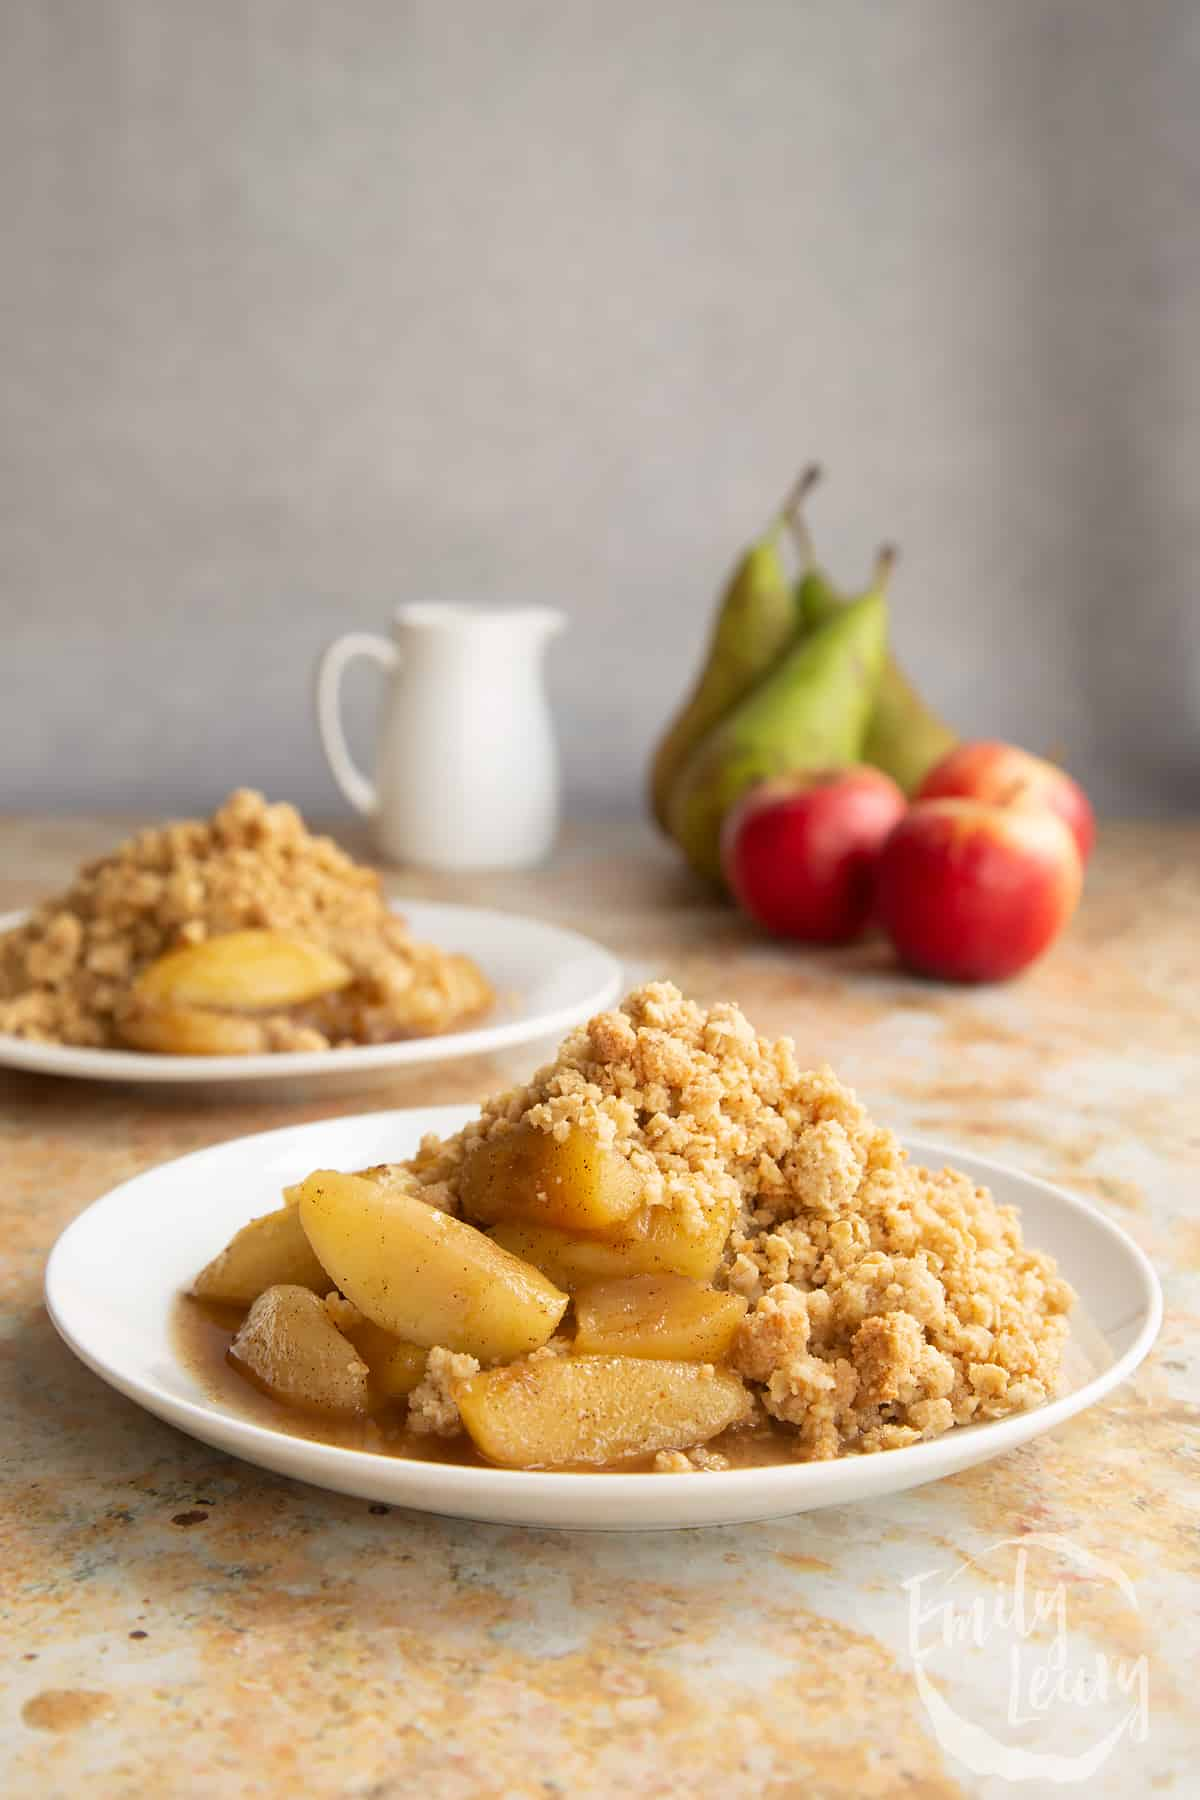 Apple pear crumble served to a small white plate.